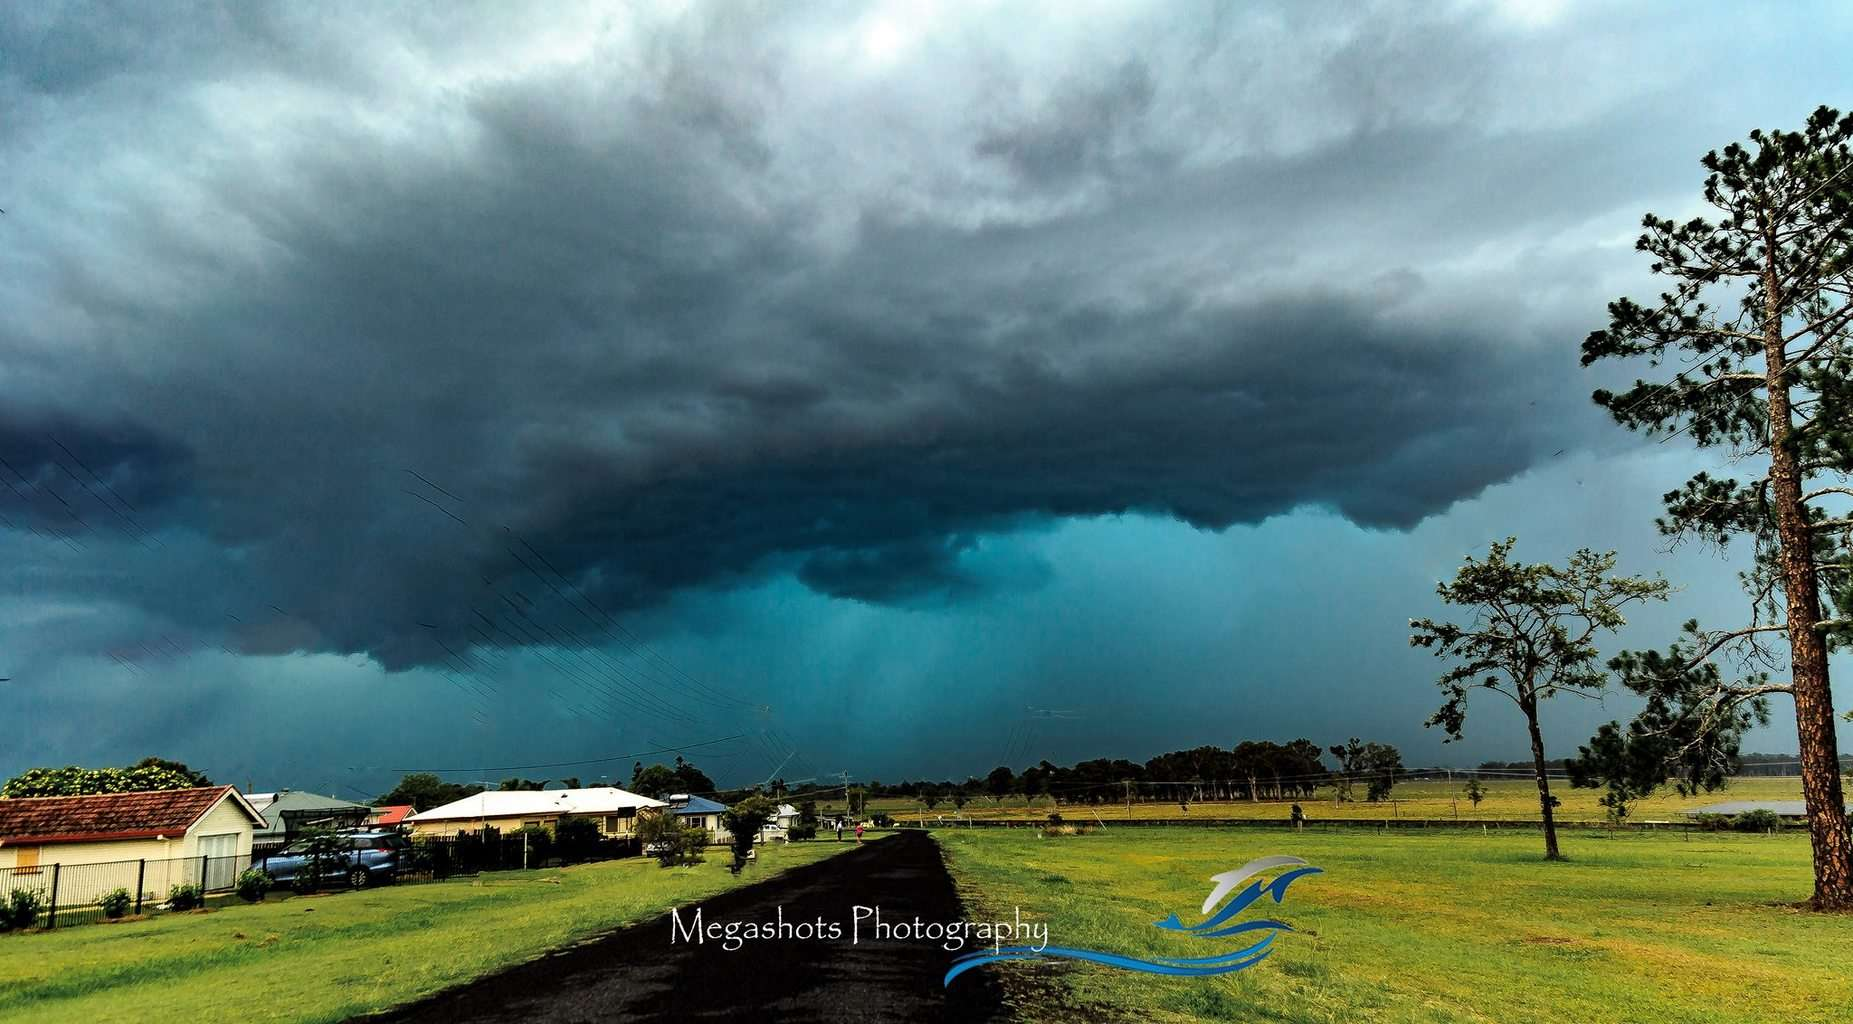 Late last year in Casino, NSW one ripper of a storm came through and it decided to drop some hail onto us. Fortunately no damage, but gee it was awesome to watch and capture this coming in.